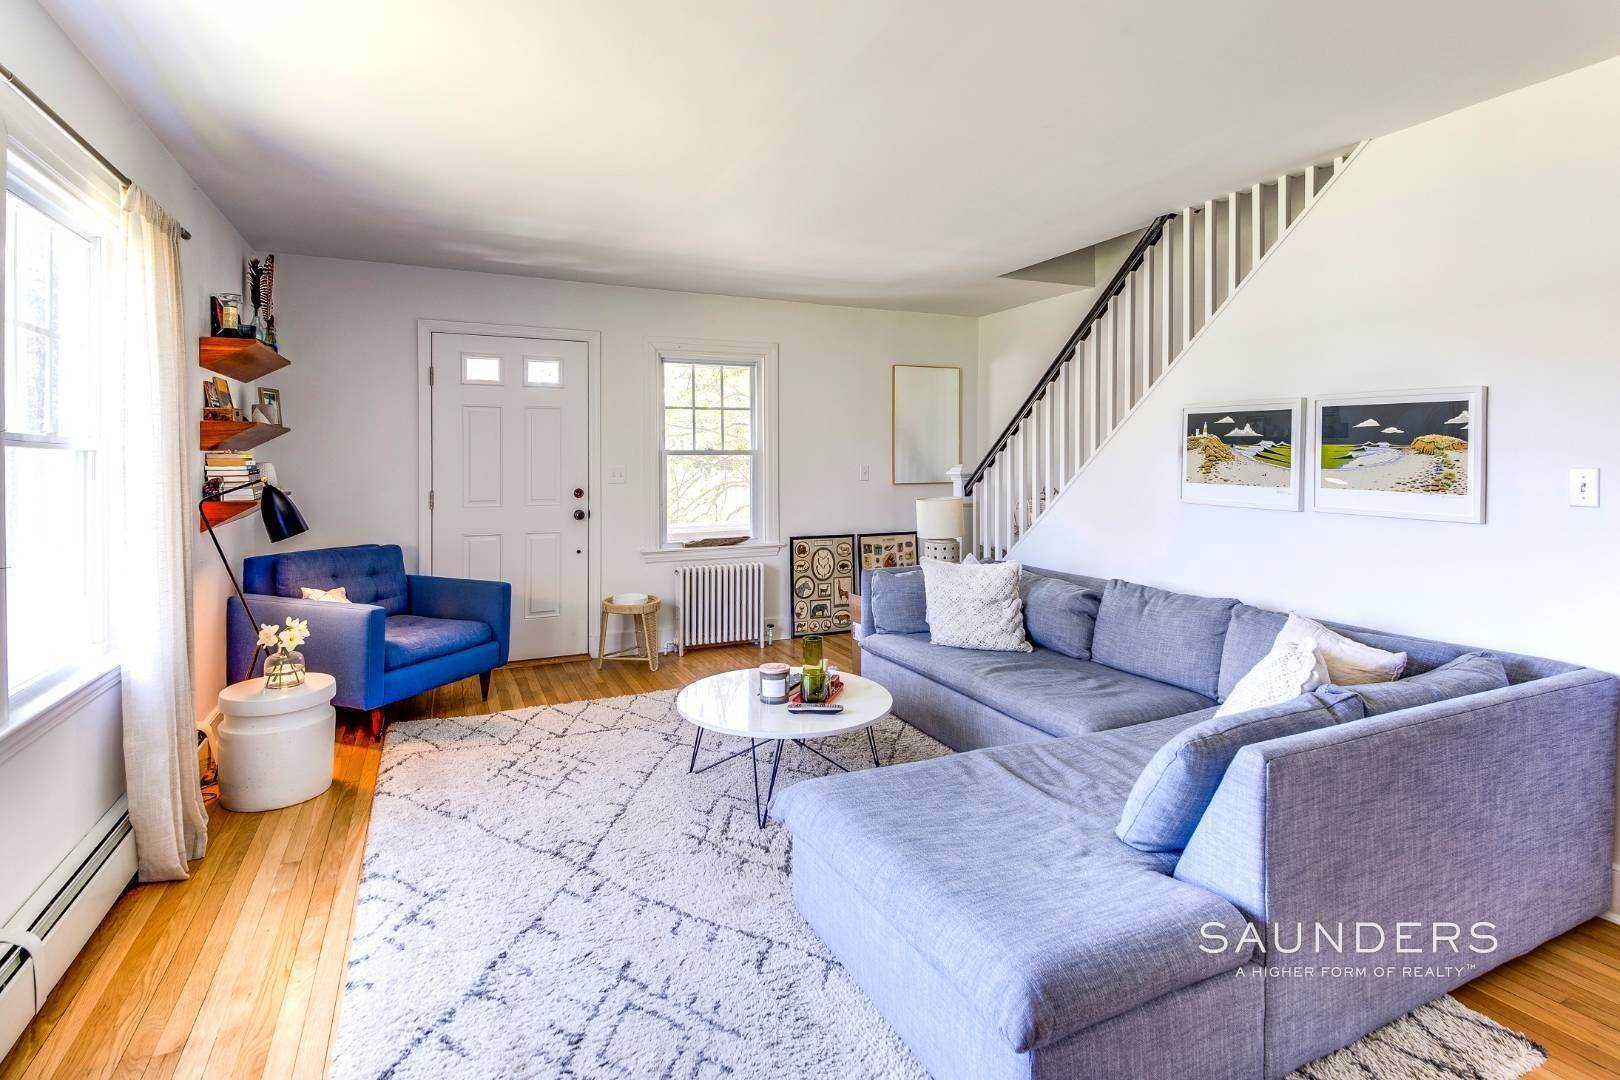 4. Single Family Homes for Sale at East Hampton Cottage On 1.17 Acres 43 Miller Lane West, East Hampton, East Hampton Town, NY 11937